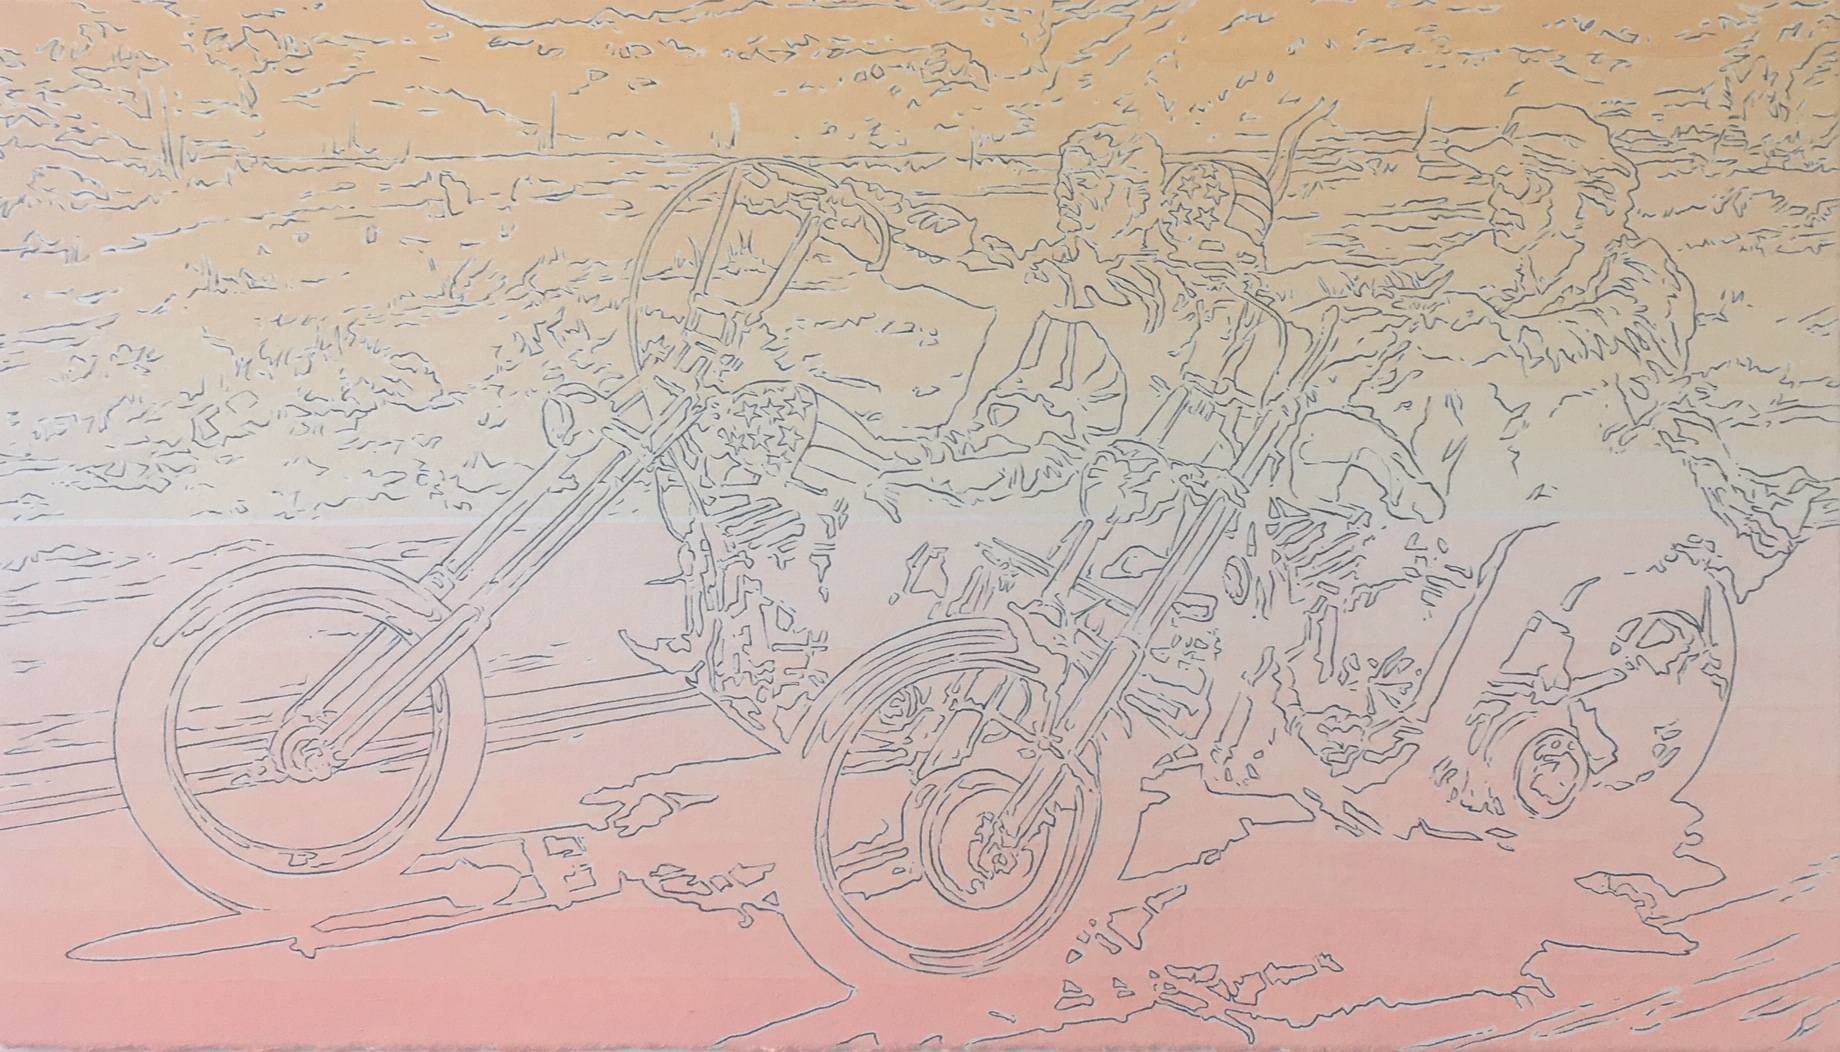 Samuel Stabler,  Easy Rider , pen and acrylic on paper, 8x14 in, 2019